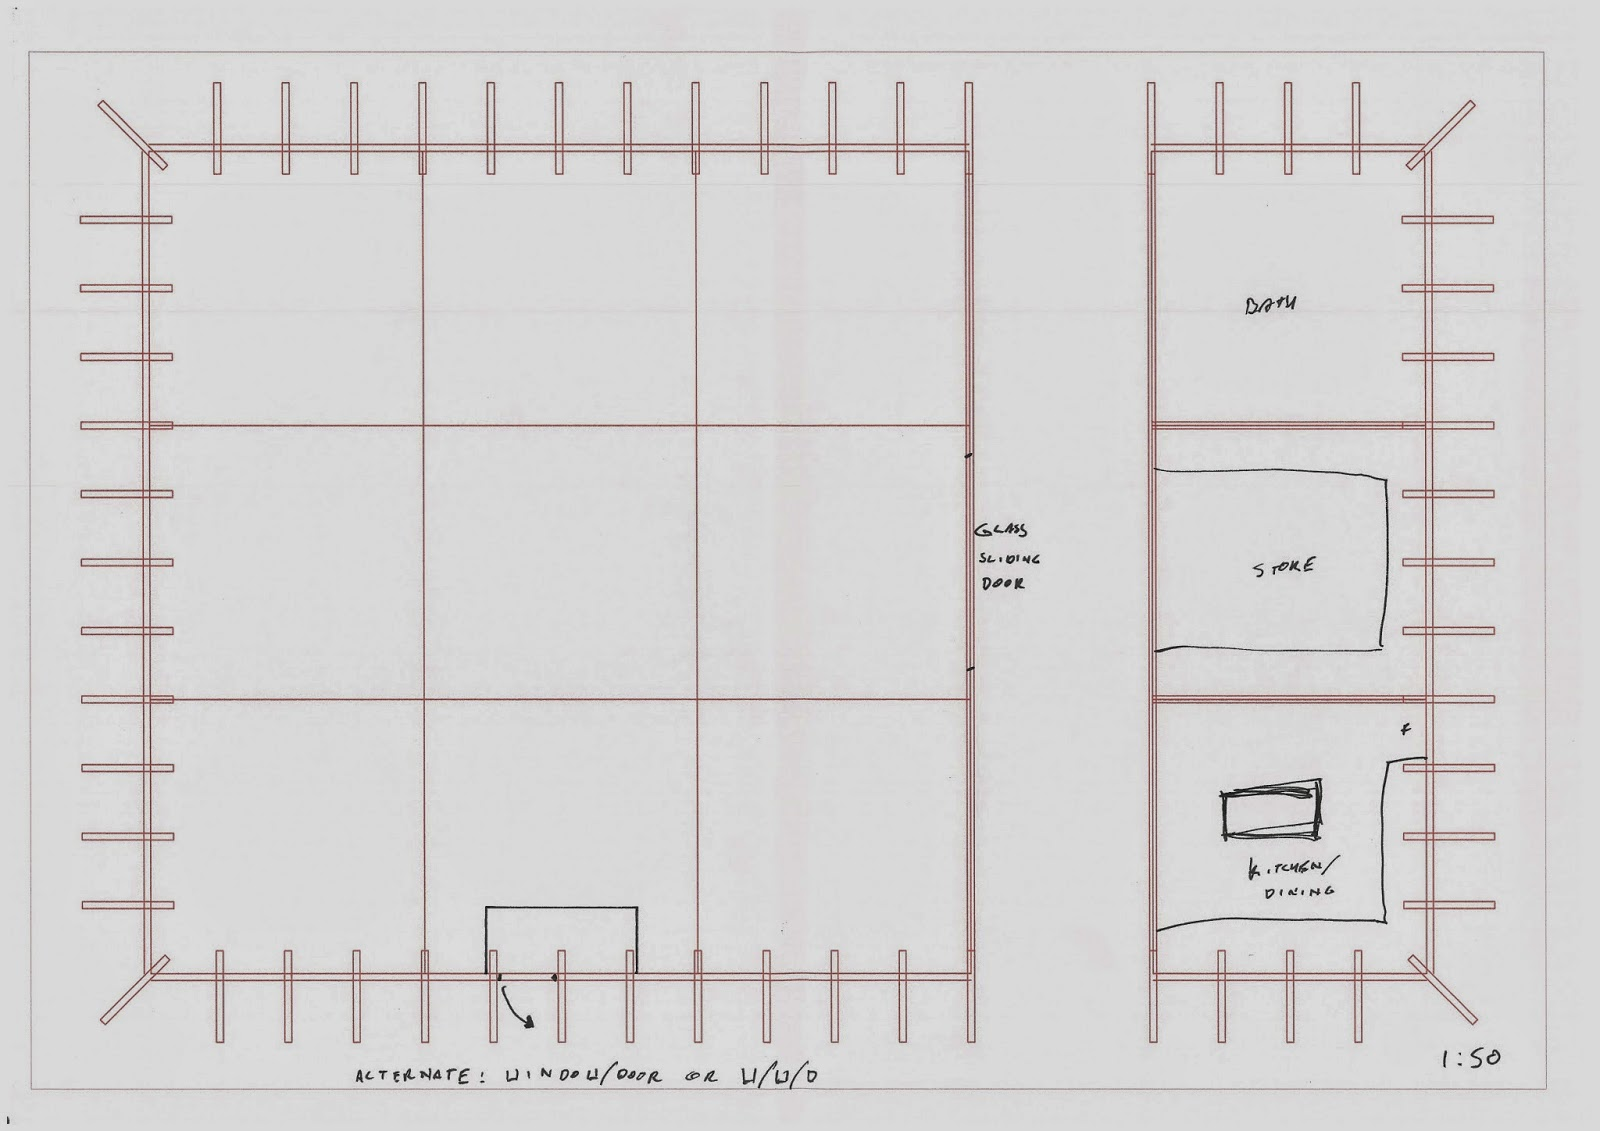 general plan outline possible arrangement for kitchen and storage space i intend to have the majority of wall panels openable with a ratio of 2 3 windows